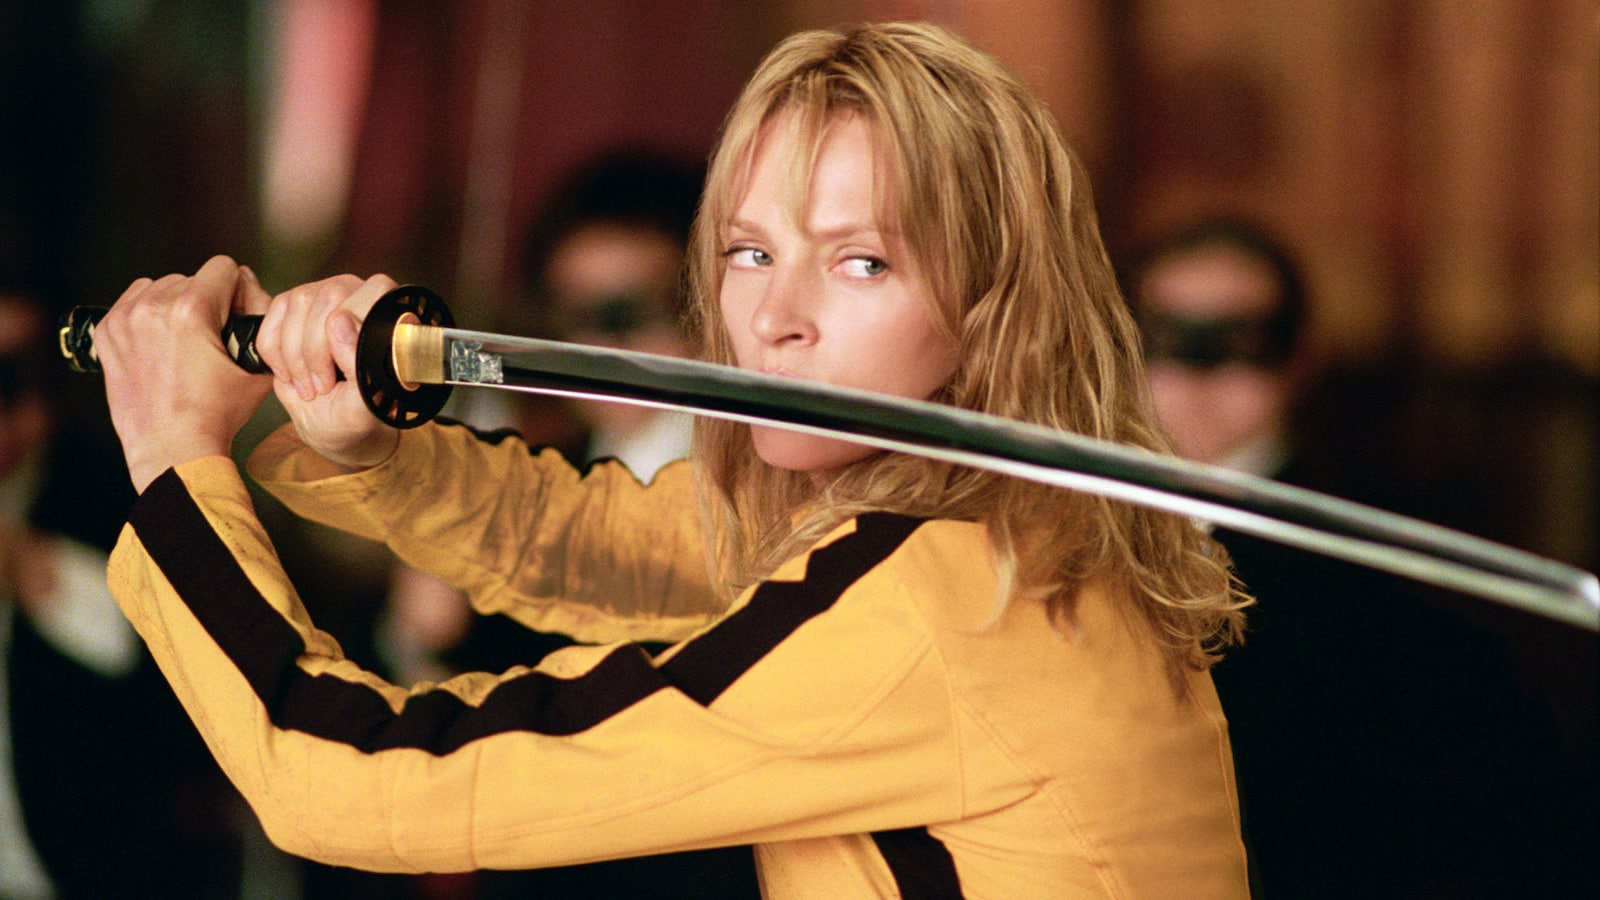 kill-bill-volume-1-2003